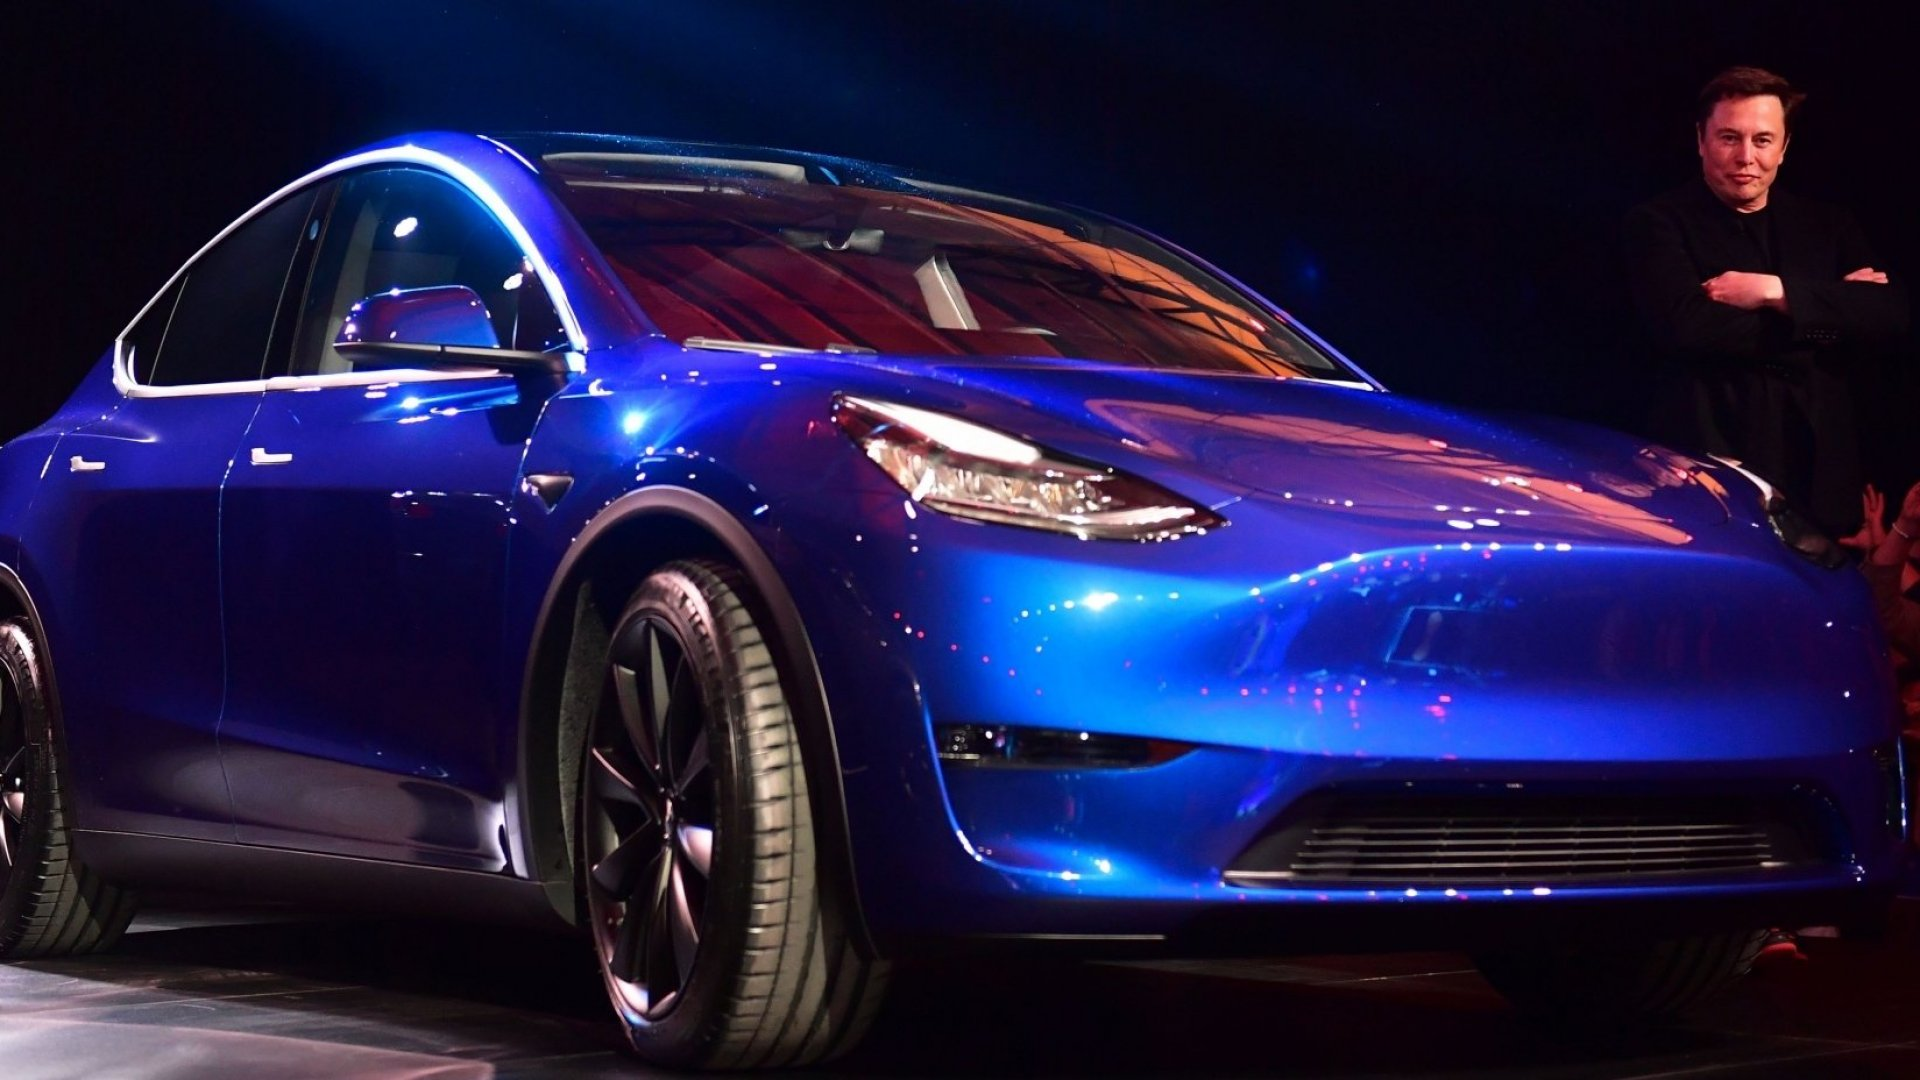 Elon Musk Makes a Massive Bet on a New SUV (and Finally Gets an Ending for a Lame Joke)